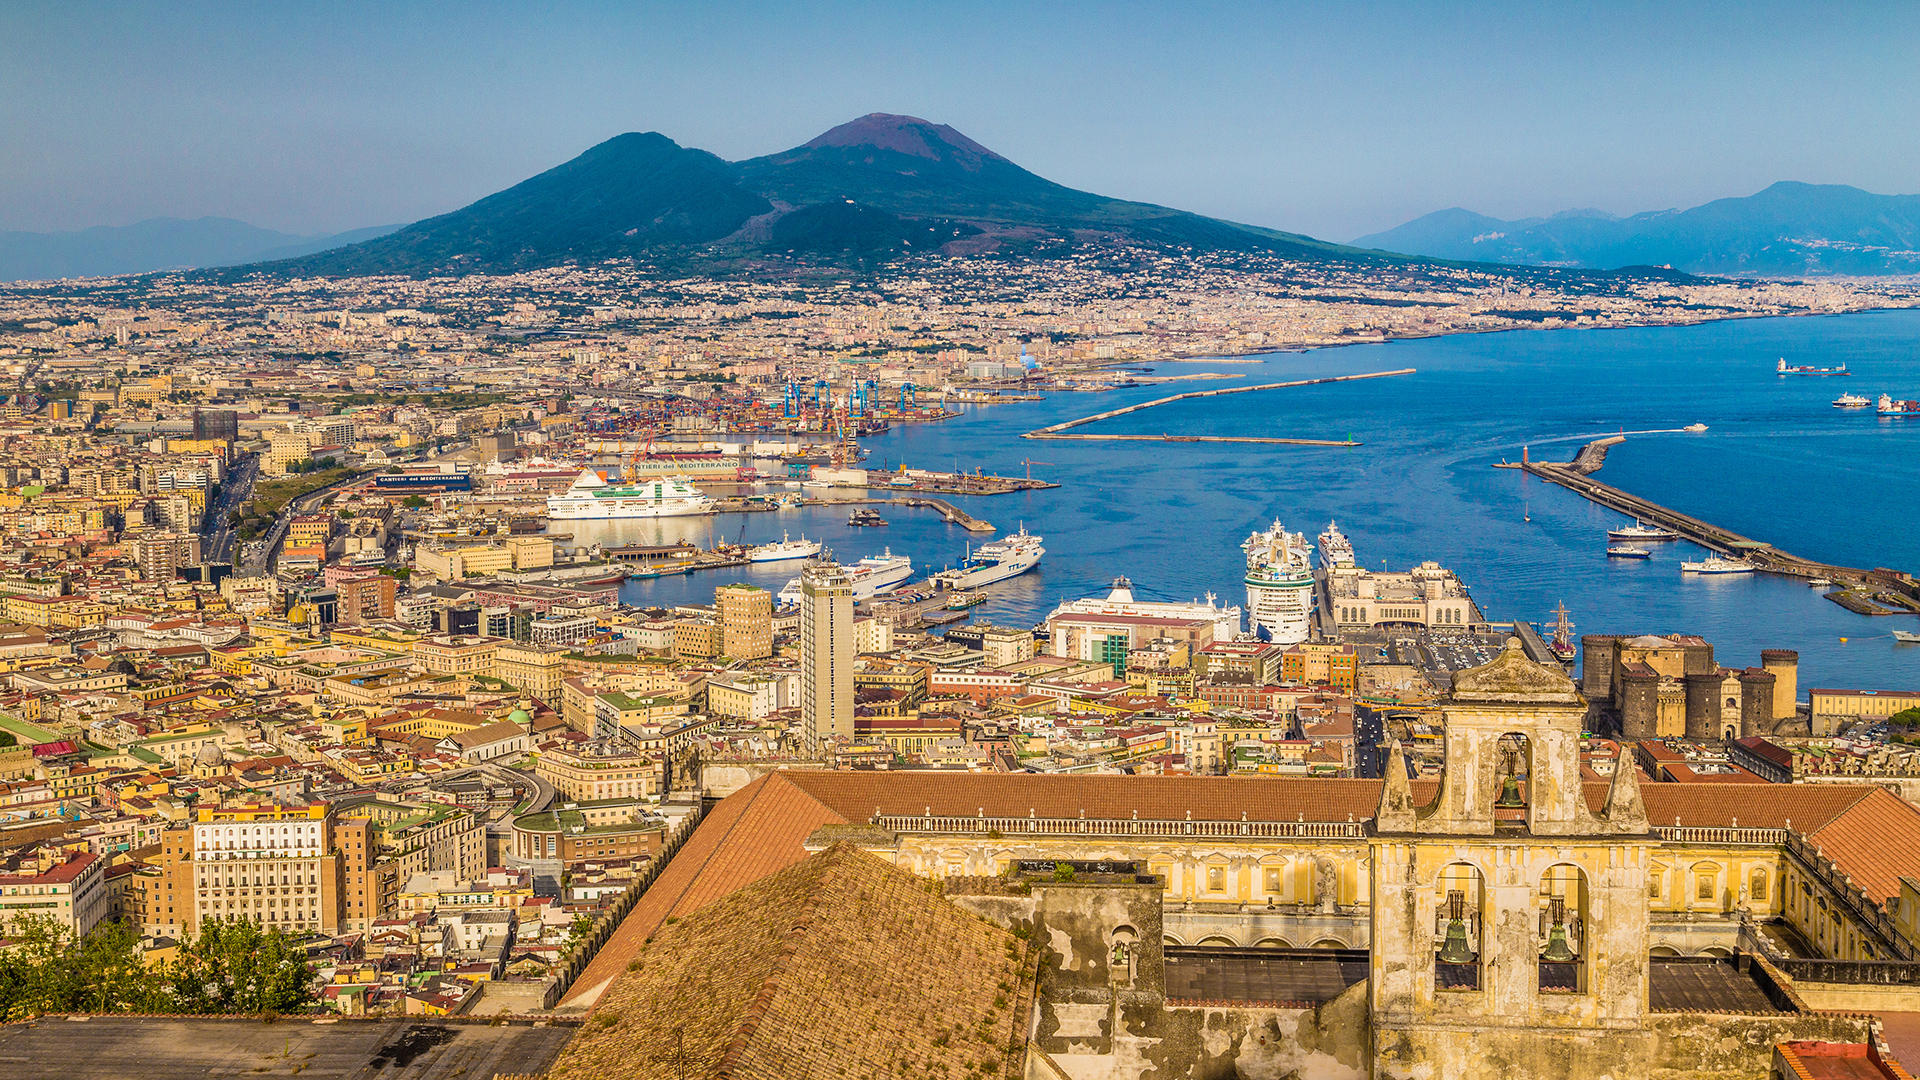 WHAT TO SEE IN NAPLES IN A WEEKEND